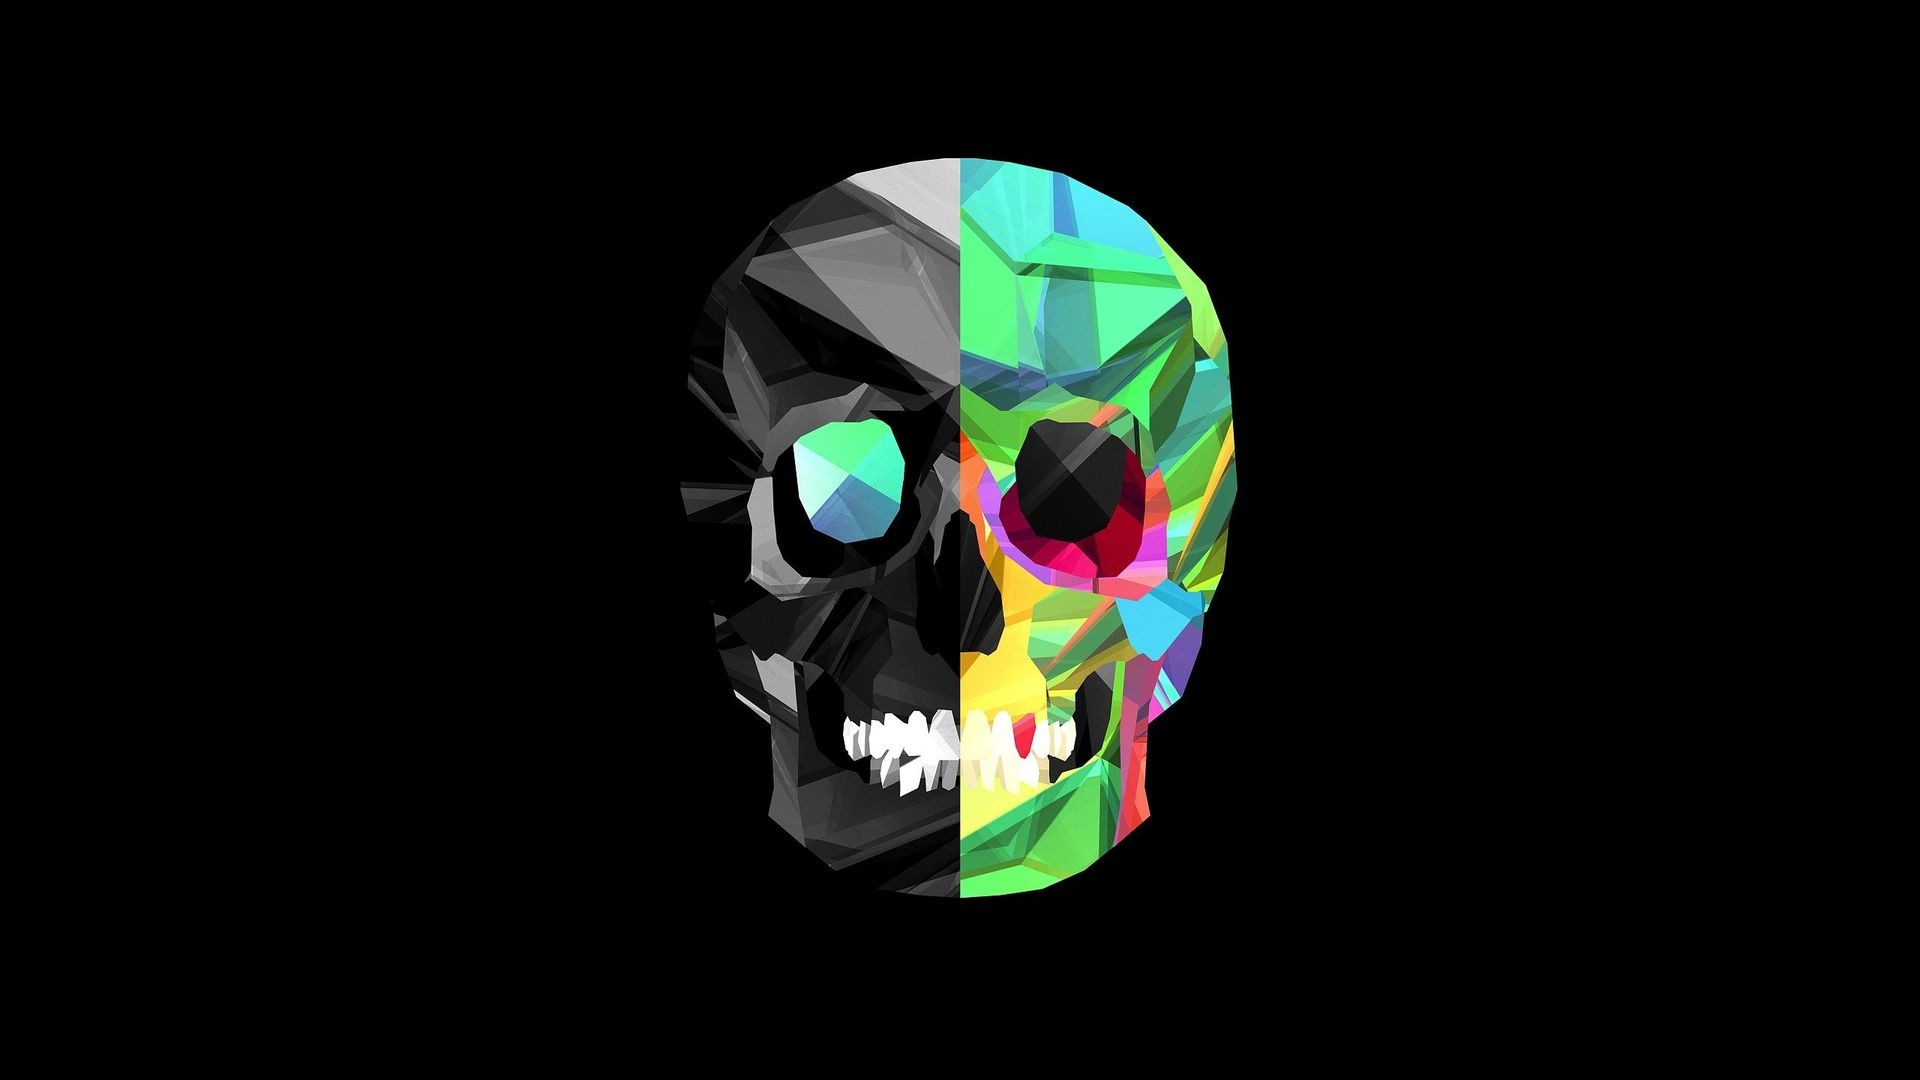 1920x1080 Cool Images of Colorful Skull